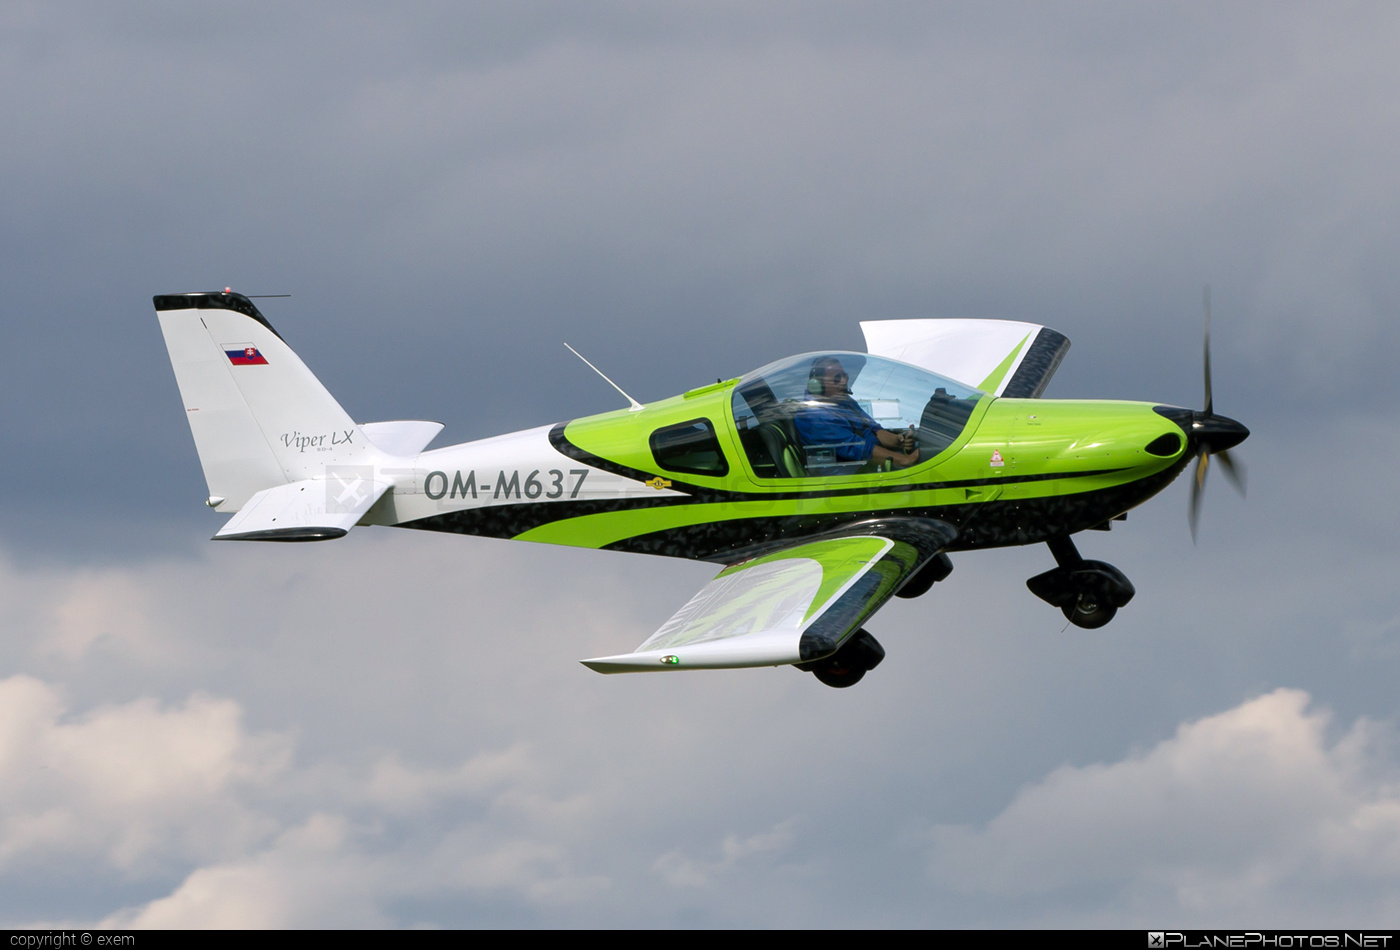 Tomark SD4 Viper LX - OM-M637 operated by Private operator #sd4viper #sd4viperlx #tomark